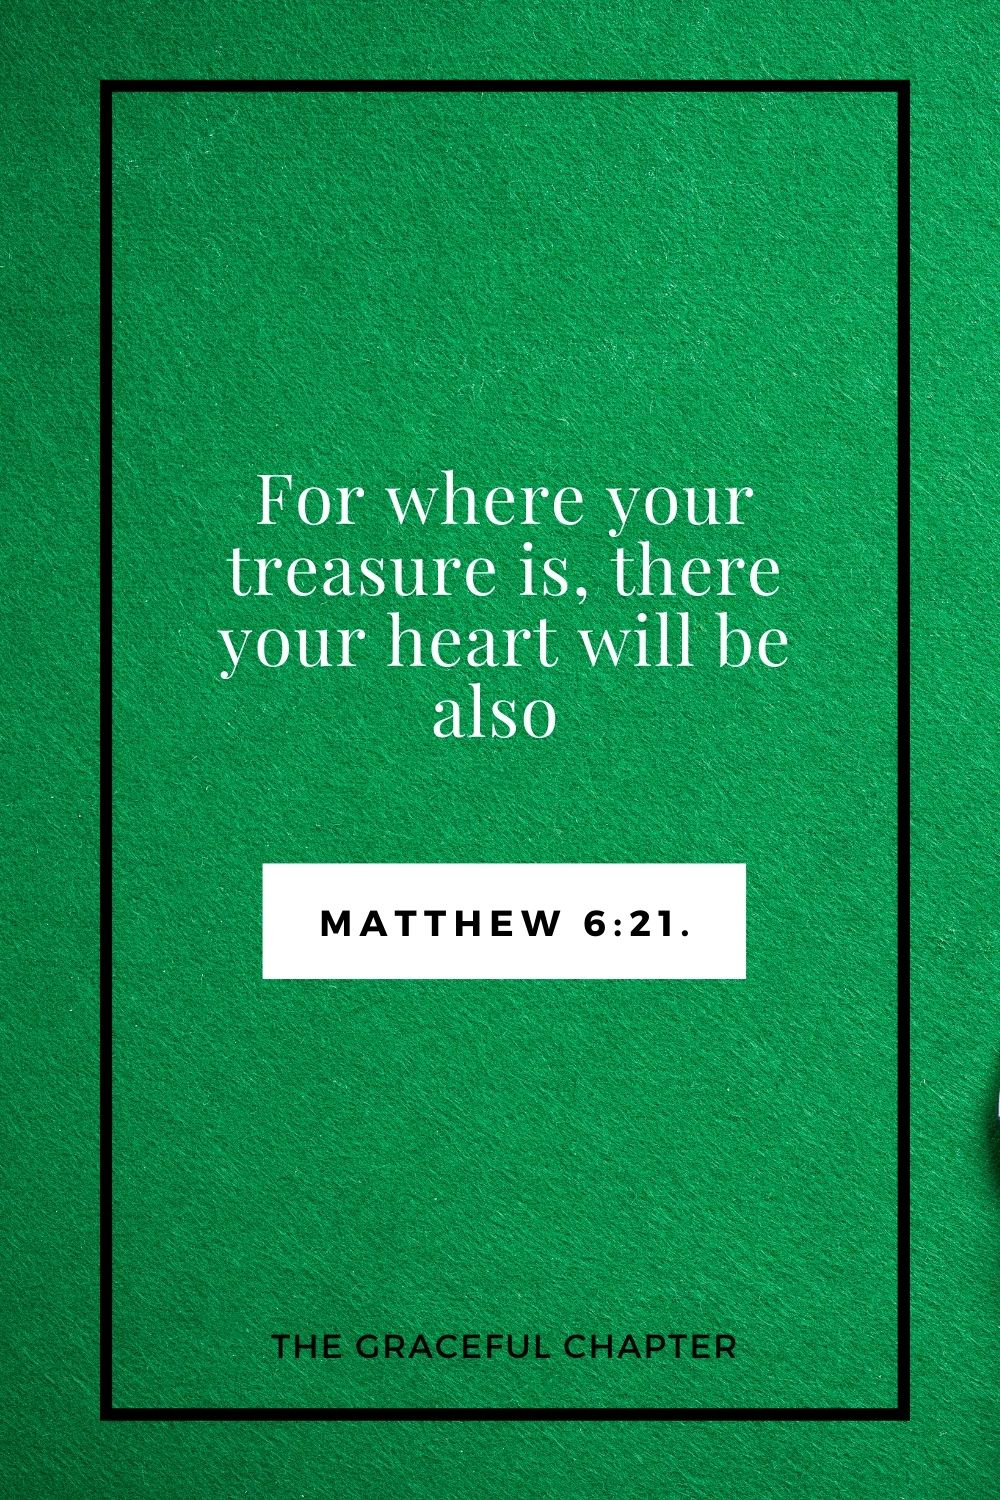 For where your treasure is, there your heart will be also Matthew 6:21.